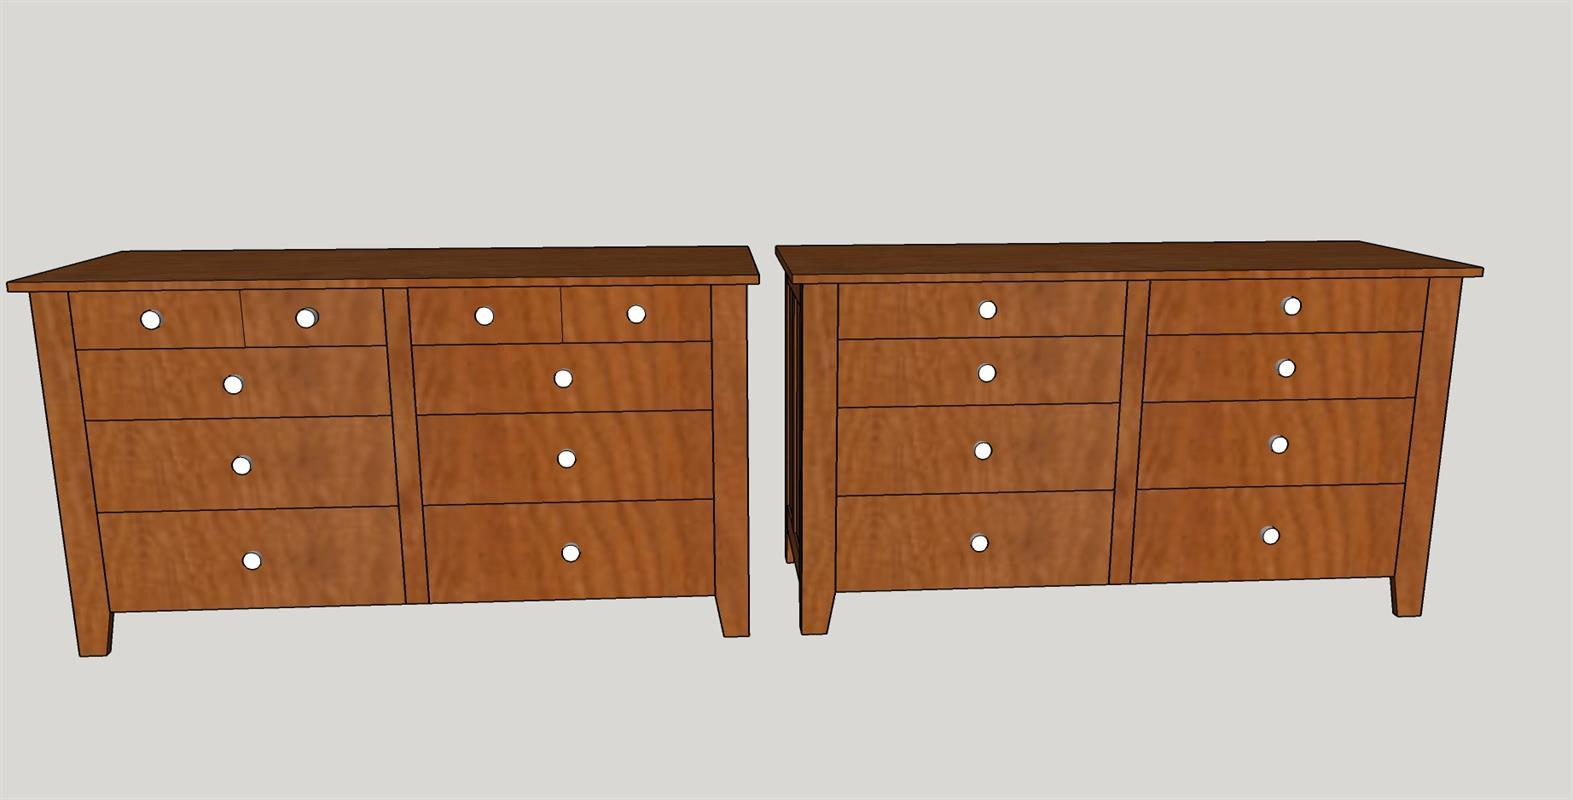 shaker-dresser-colored-two-drawer-looks